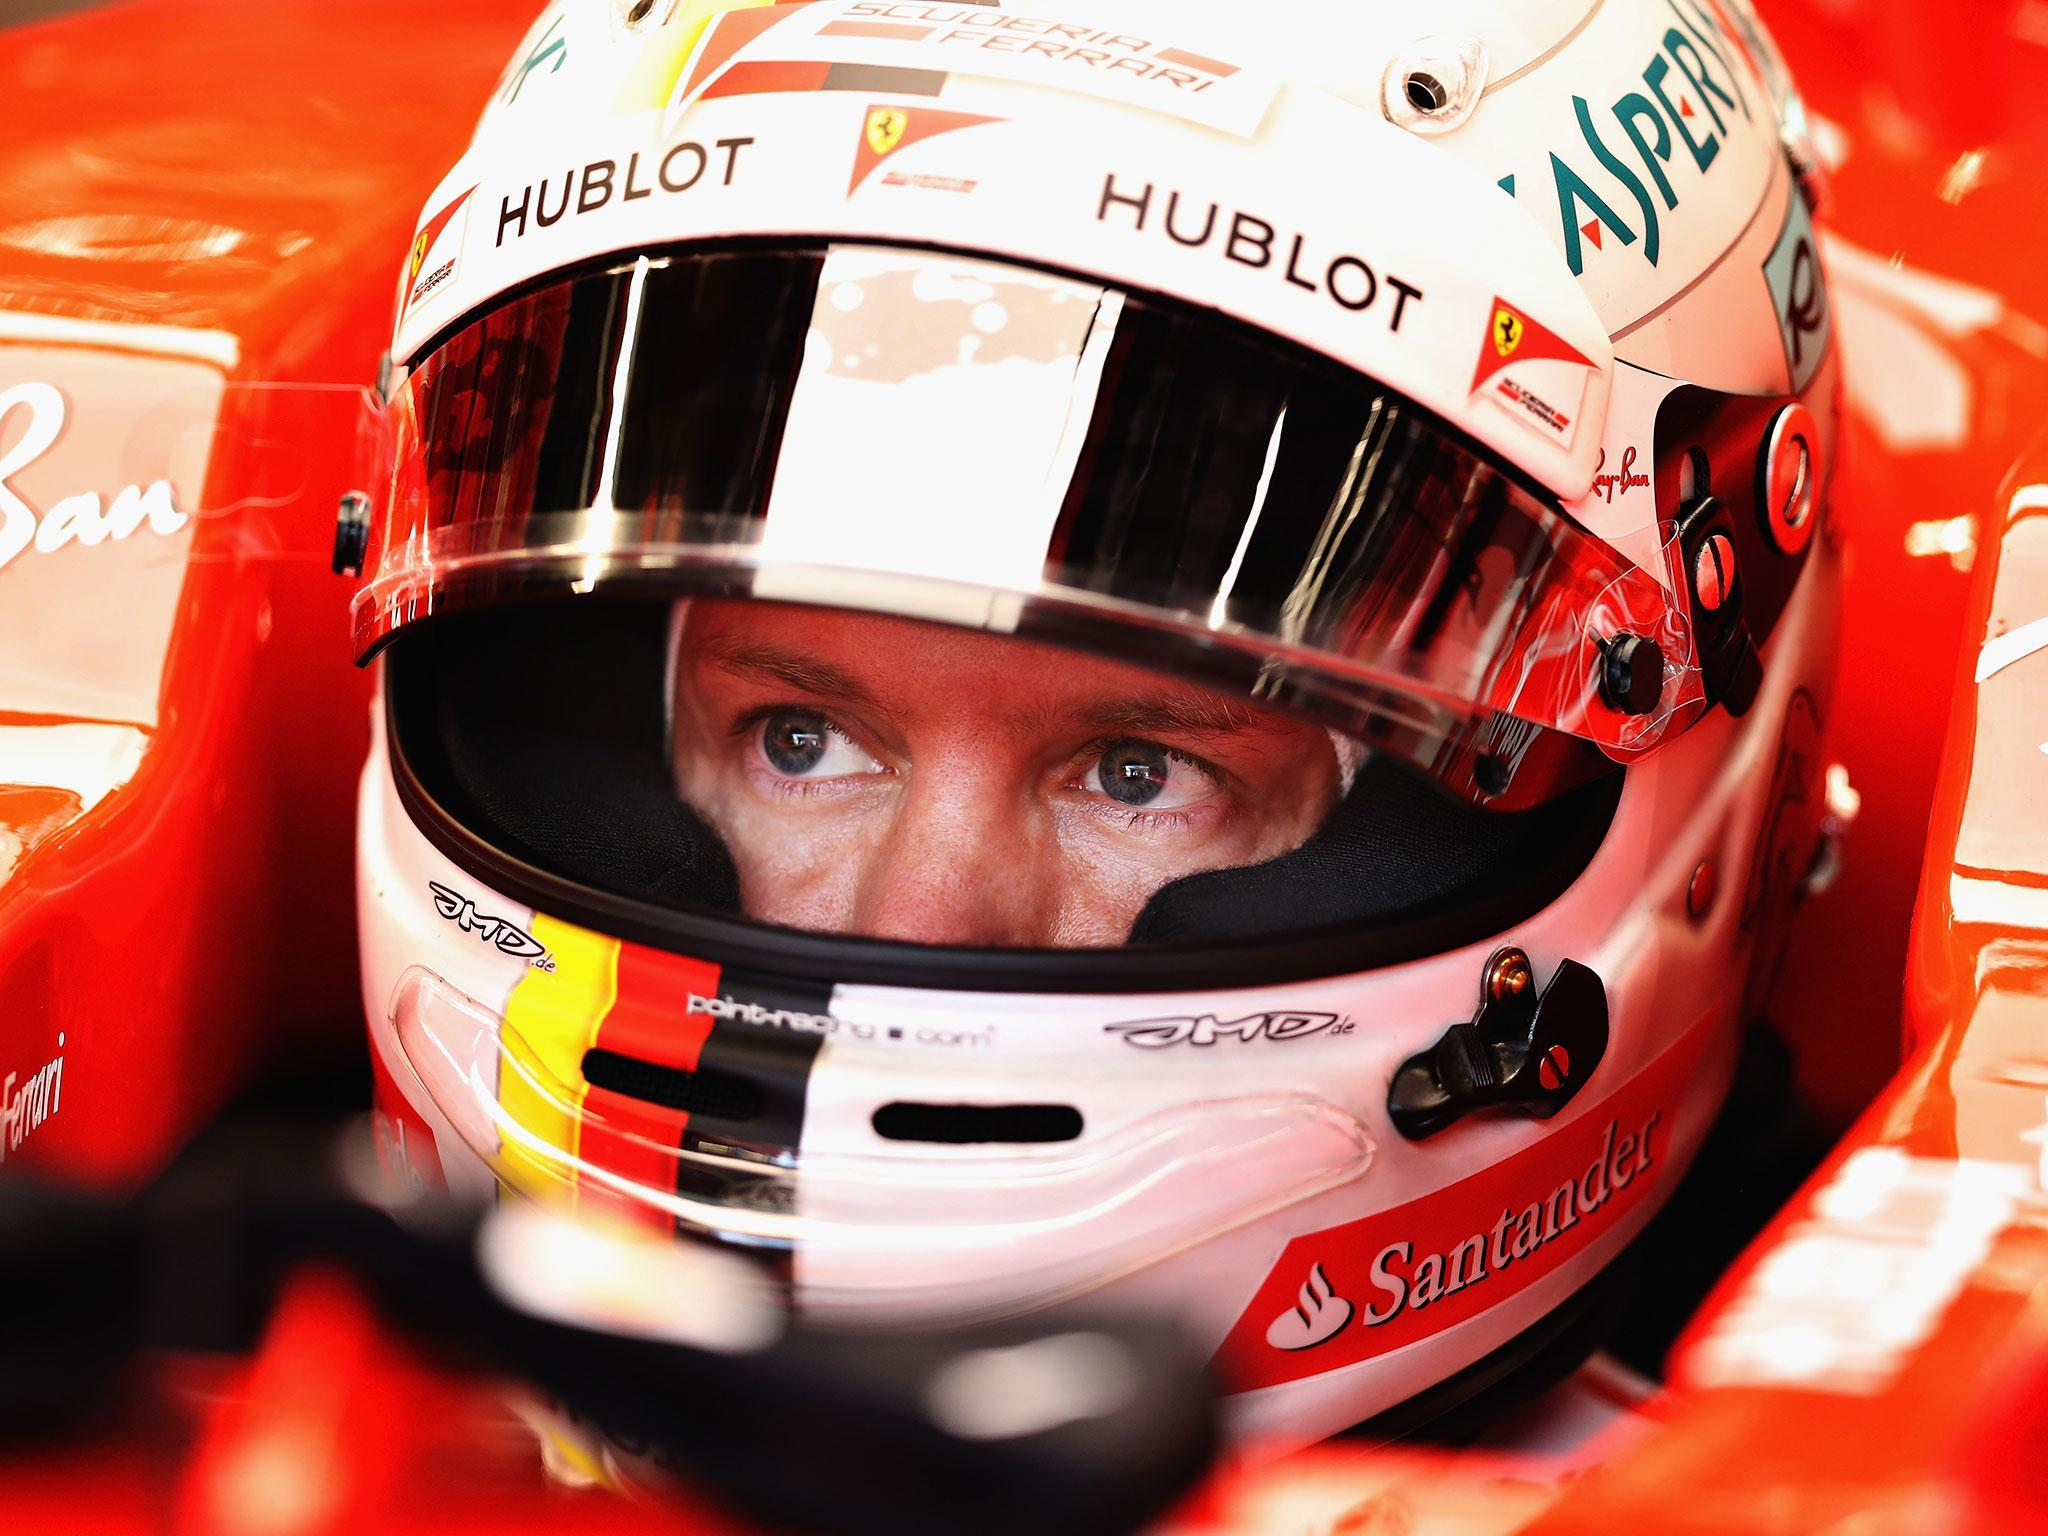 Sebastian vettel ends mercedes speculation with new three year contract at ferrari the independent